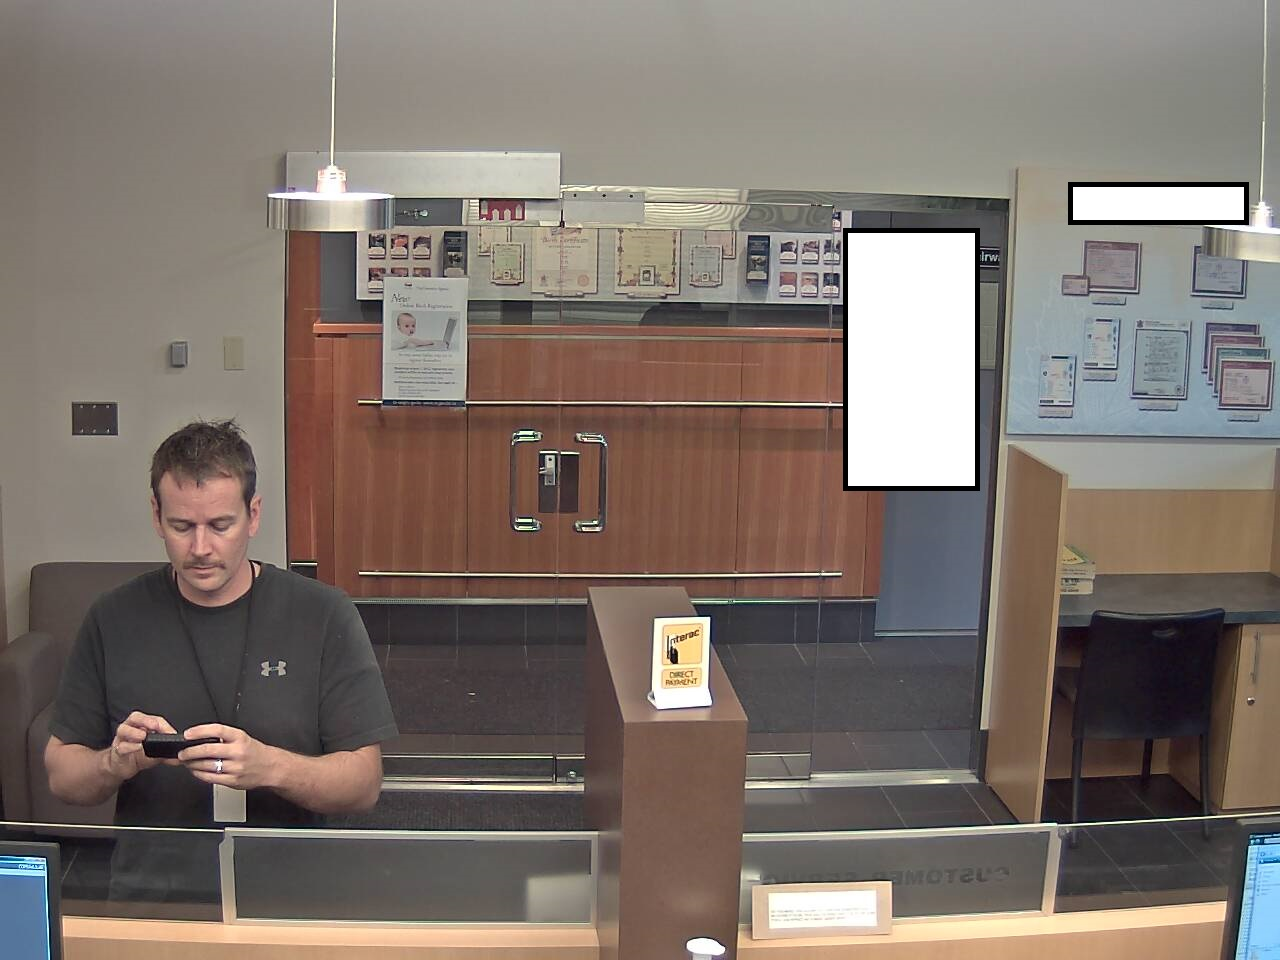 Axis_Security_Camera_Surveillance_CCTV_IP_Network_Versatech_Victoria_BC